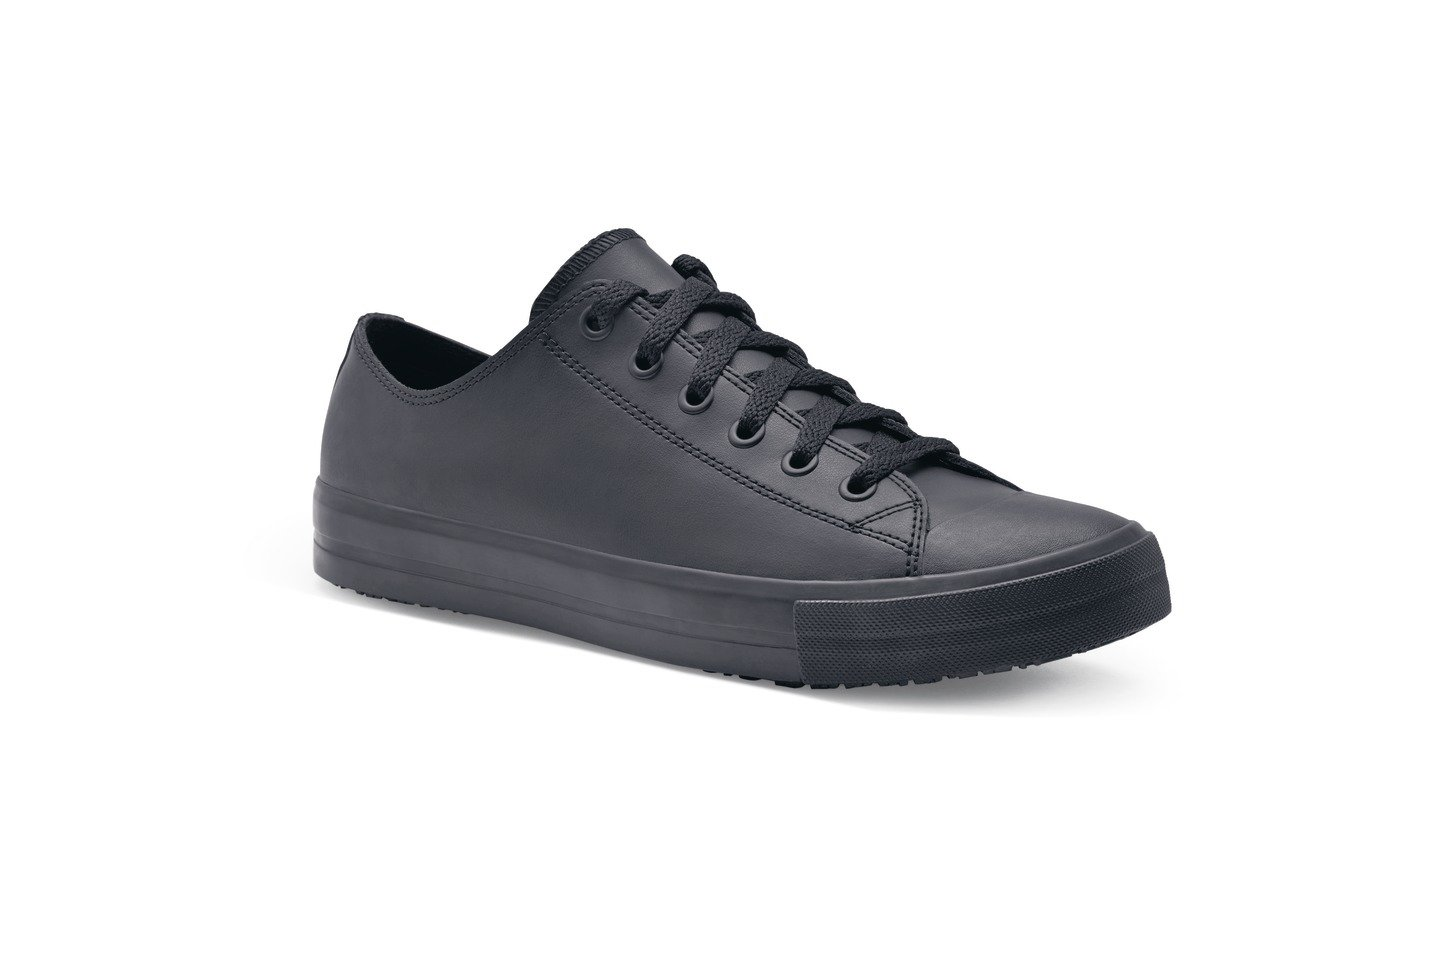 Shoes for Crews 32394-41/7 DELRAY Lä ssige Lederschuhe fü r Damen, Rutschhemmende, Grö ß e 7 UK, Schwarz